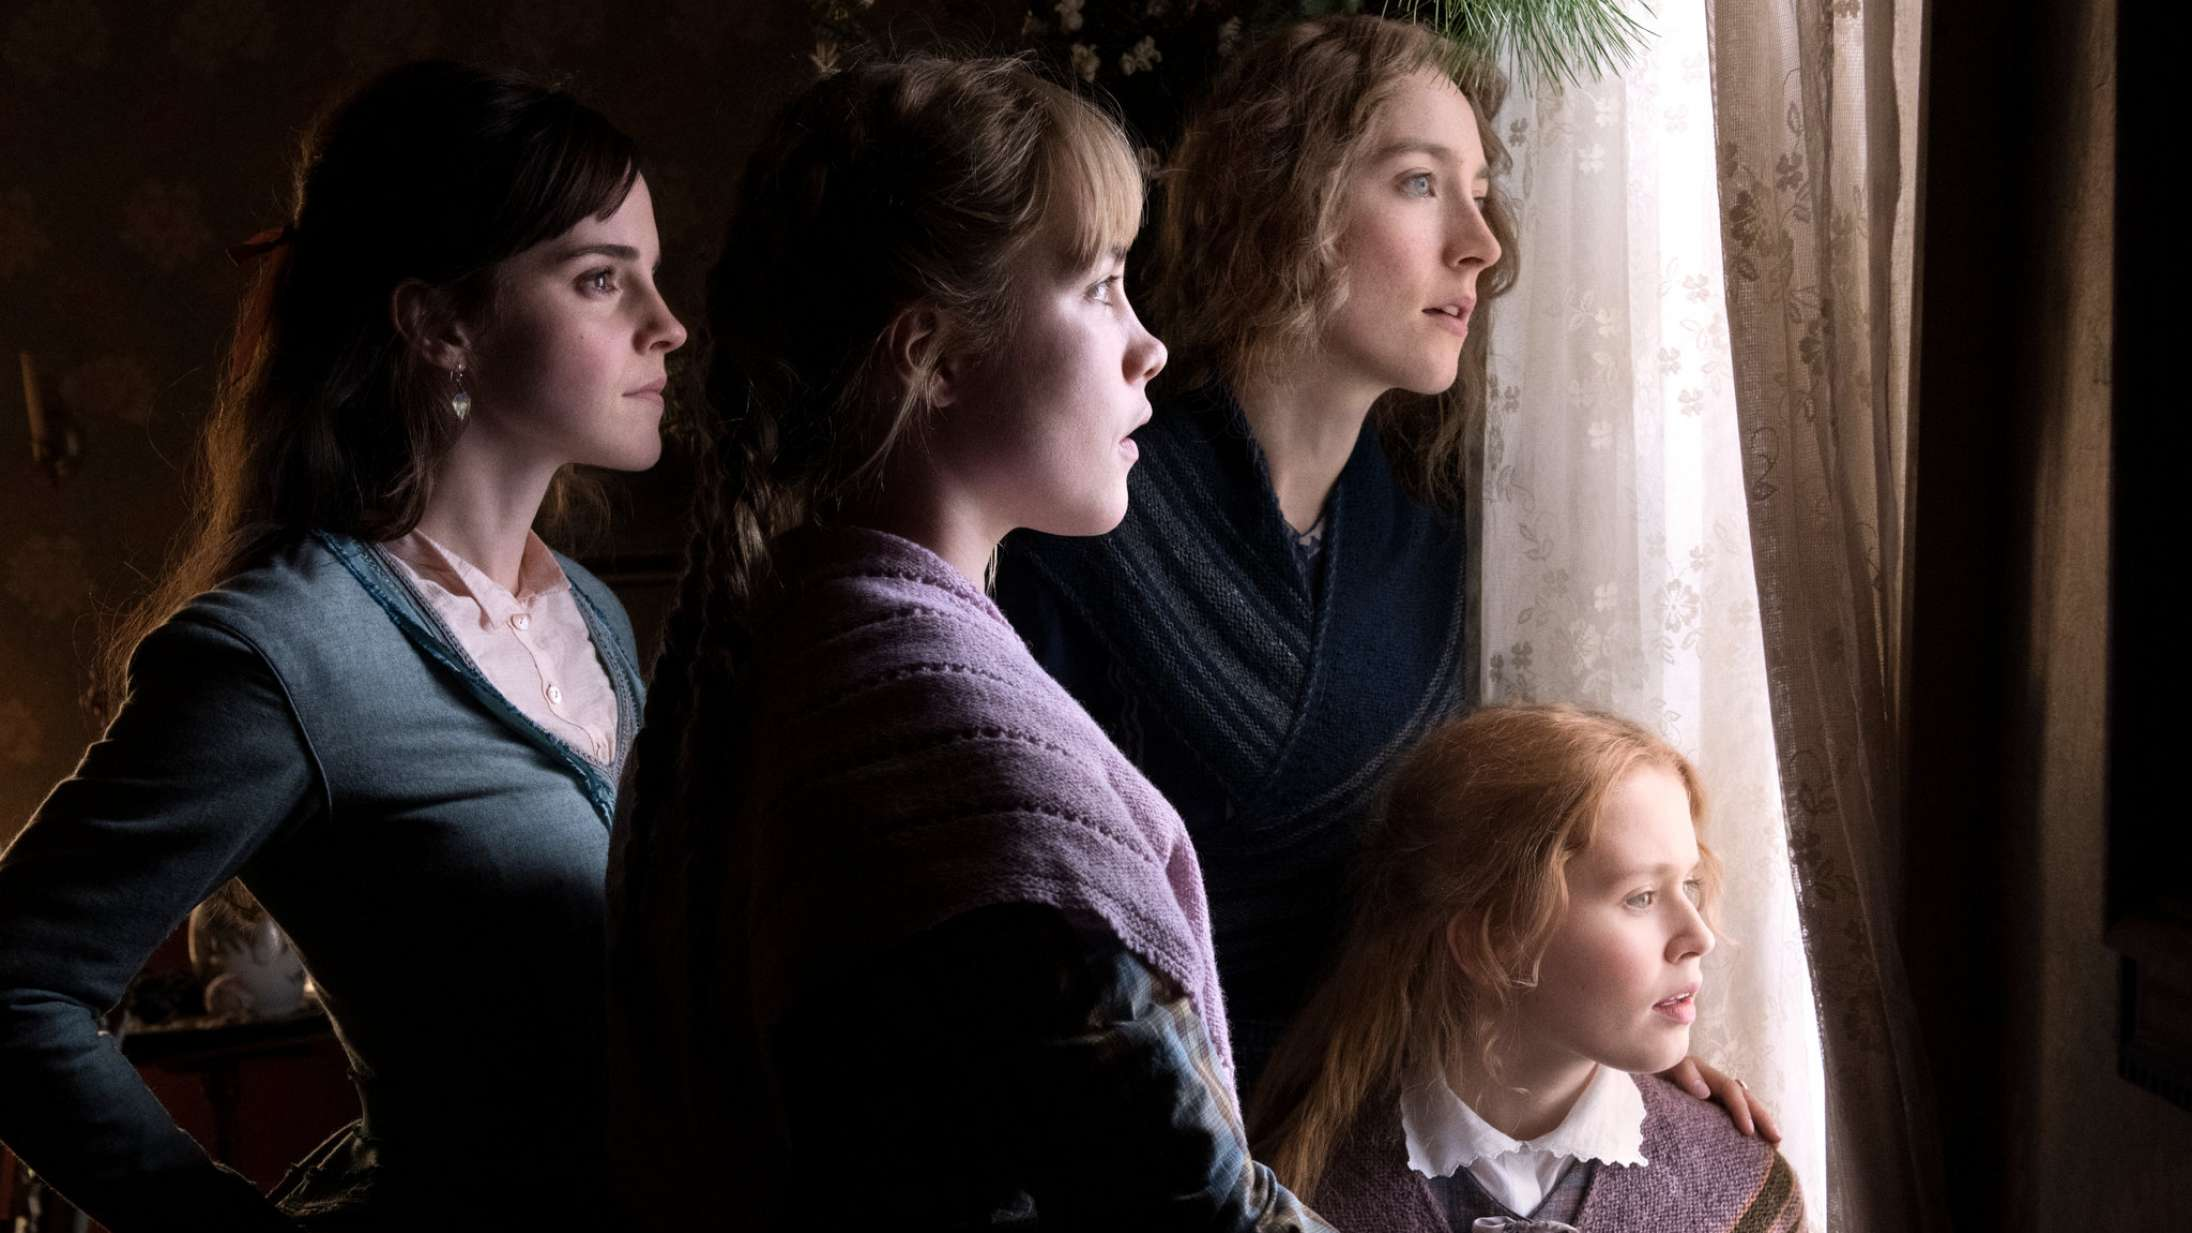 'Little Women': Greta Gerwig cementerer sin status som topnavn i Hollywood